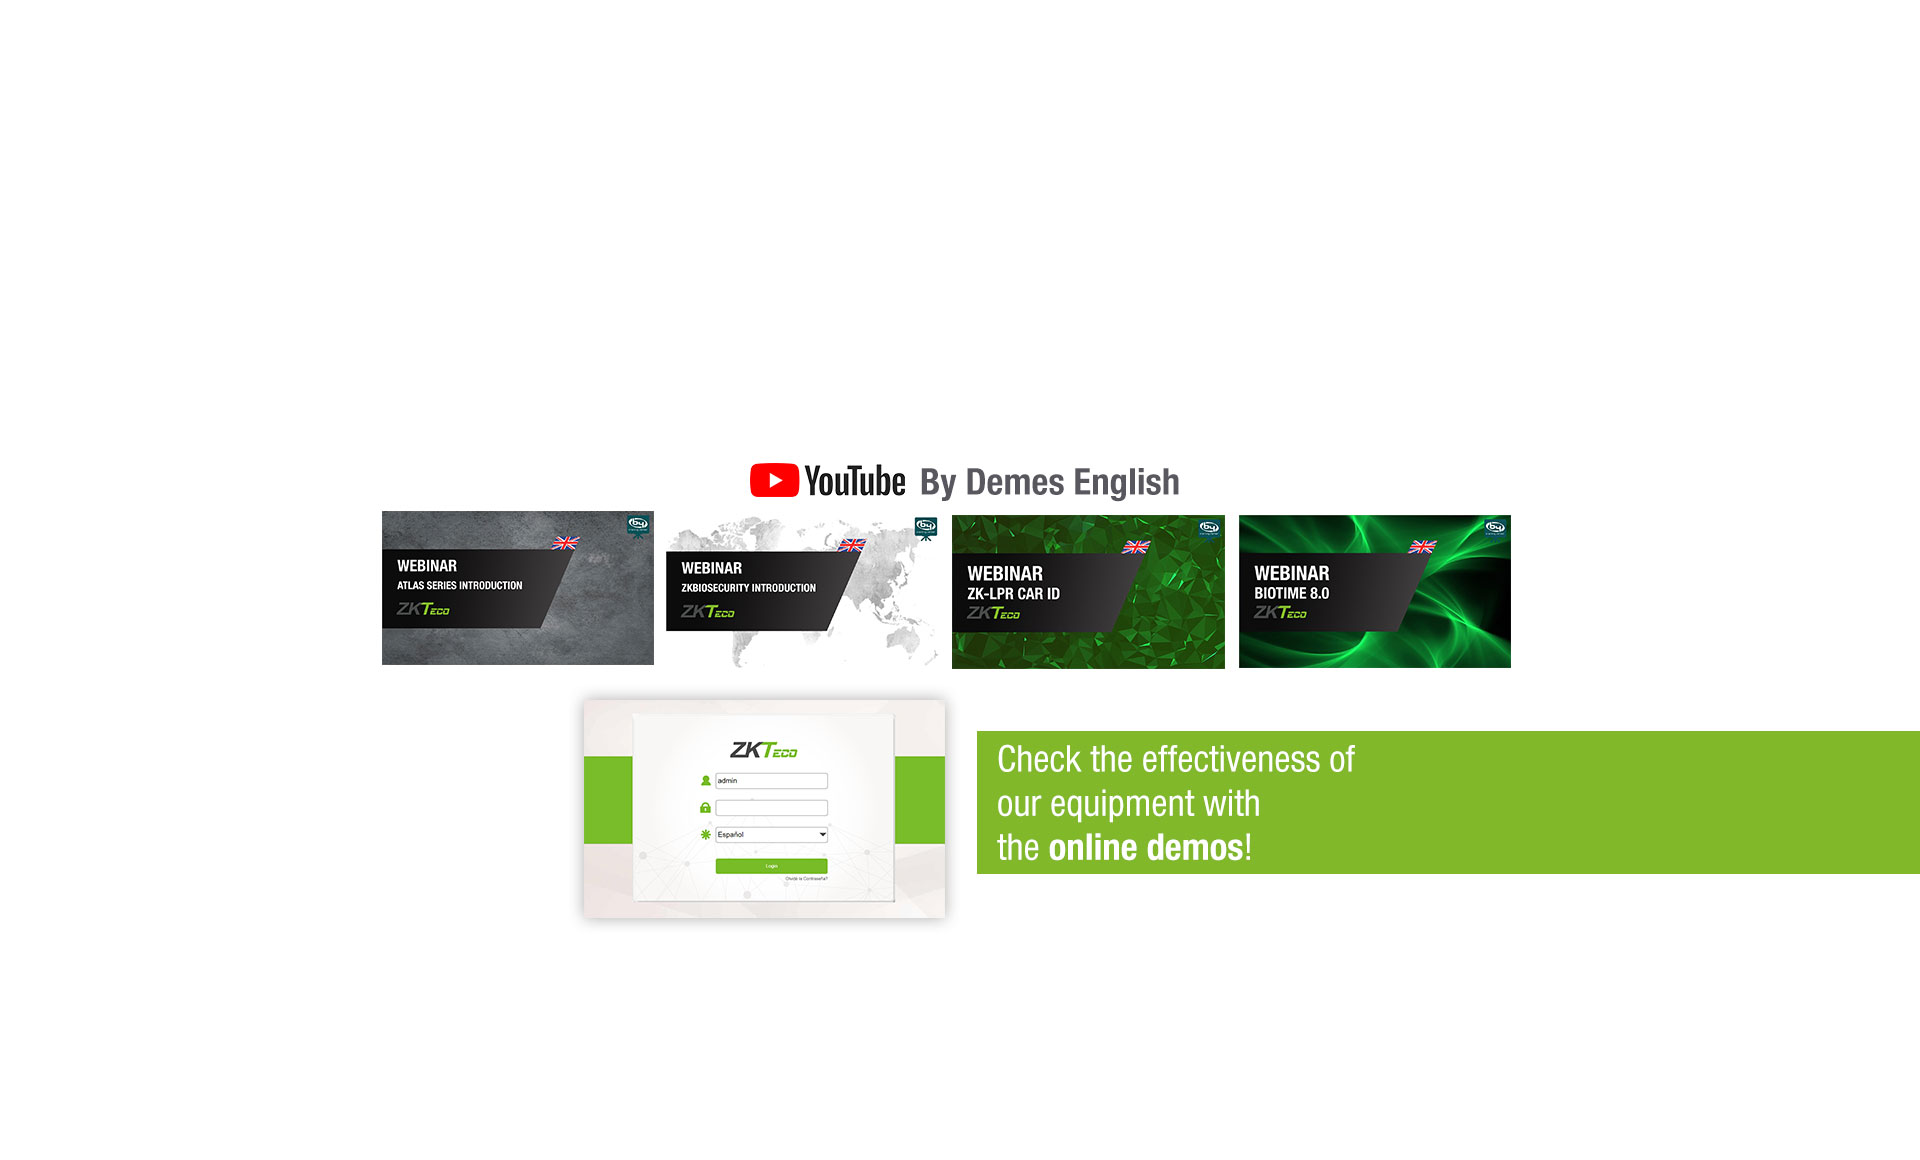 <b>ZKTeco webinars now available on our YouTube channel!</b>